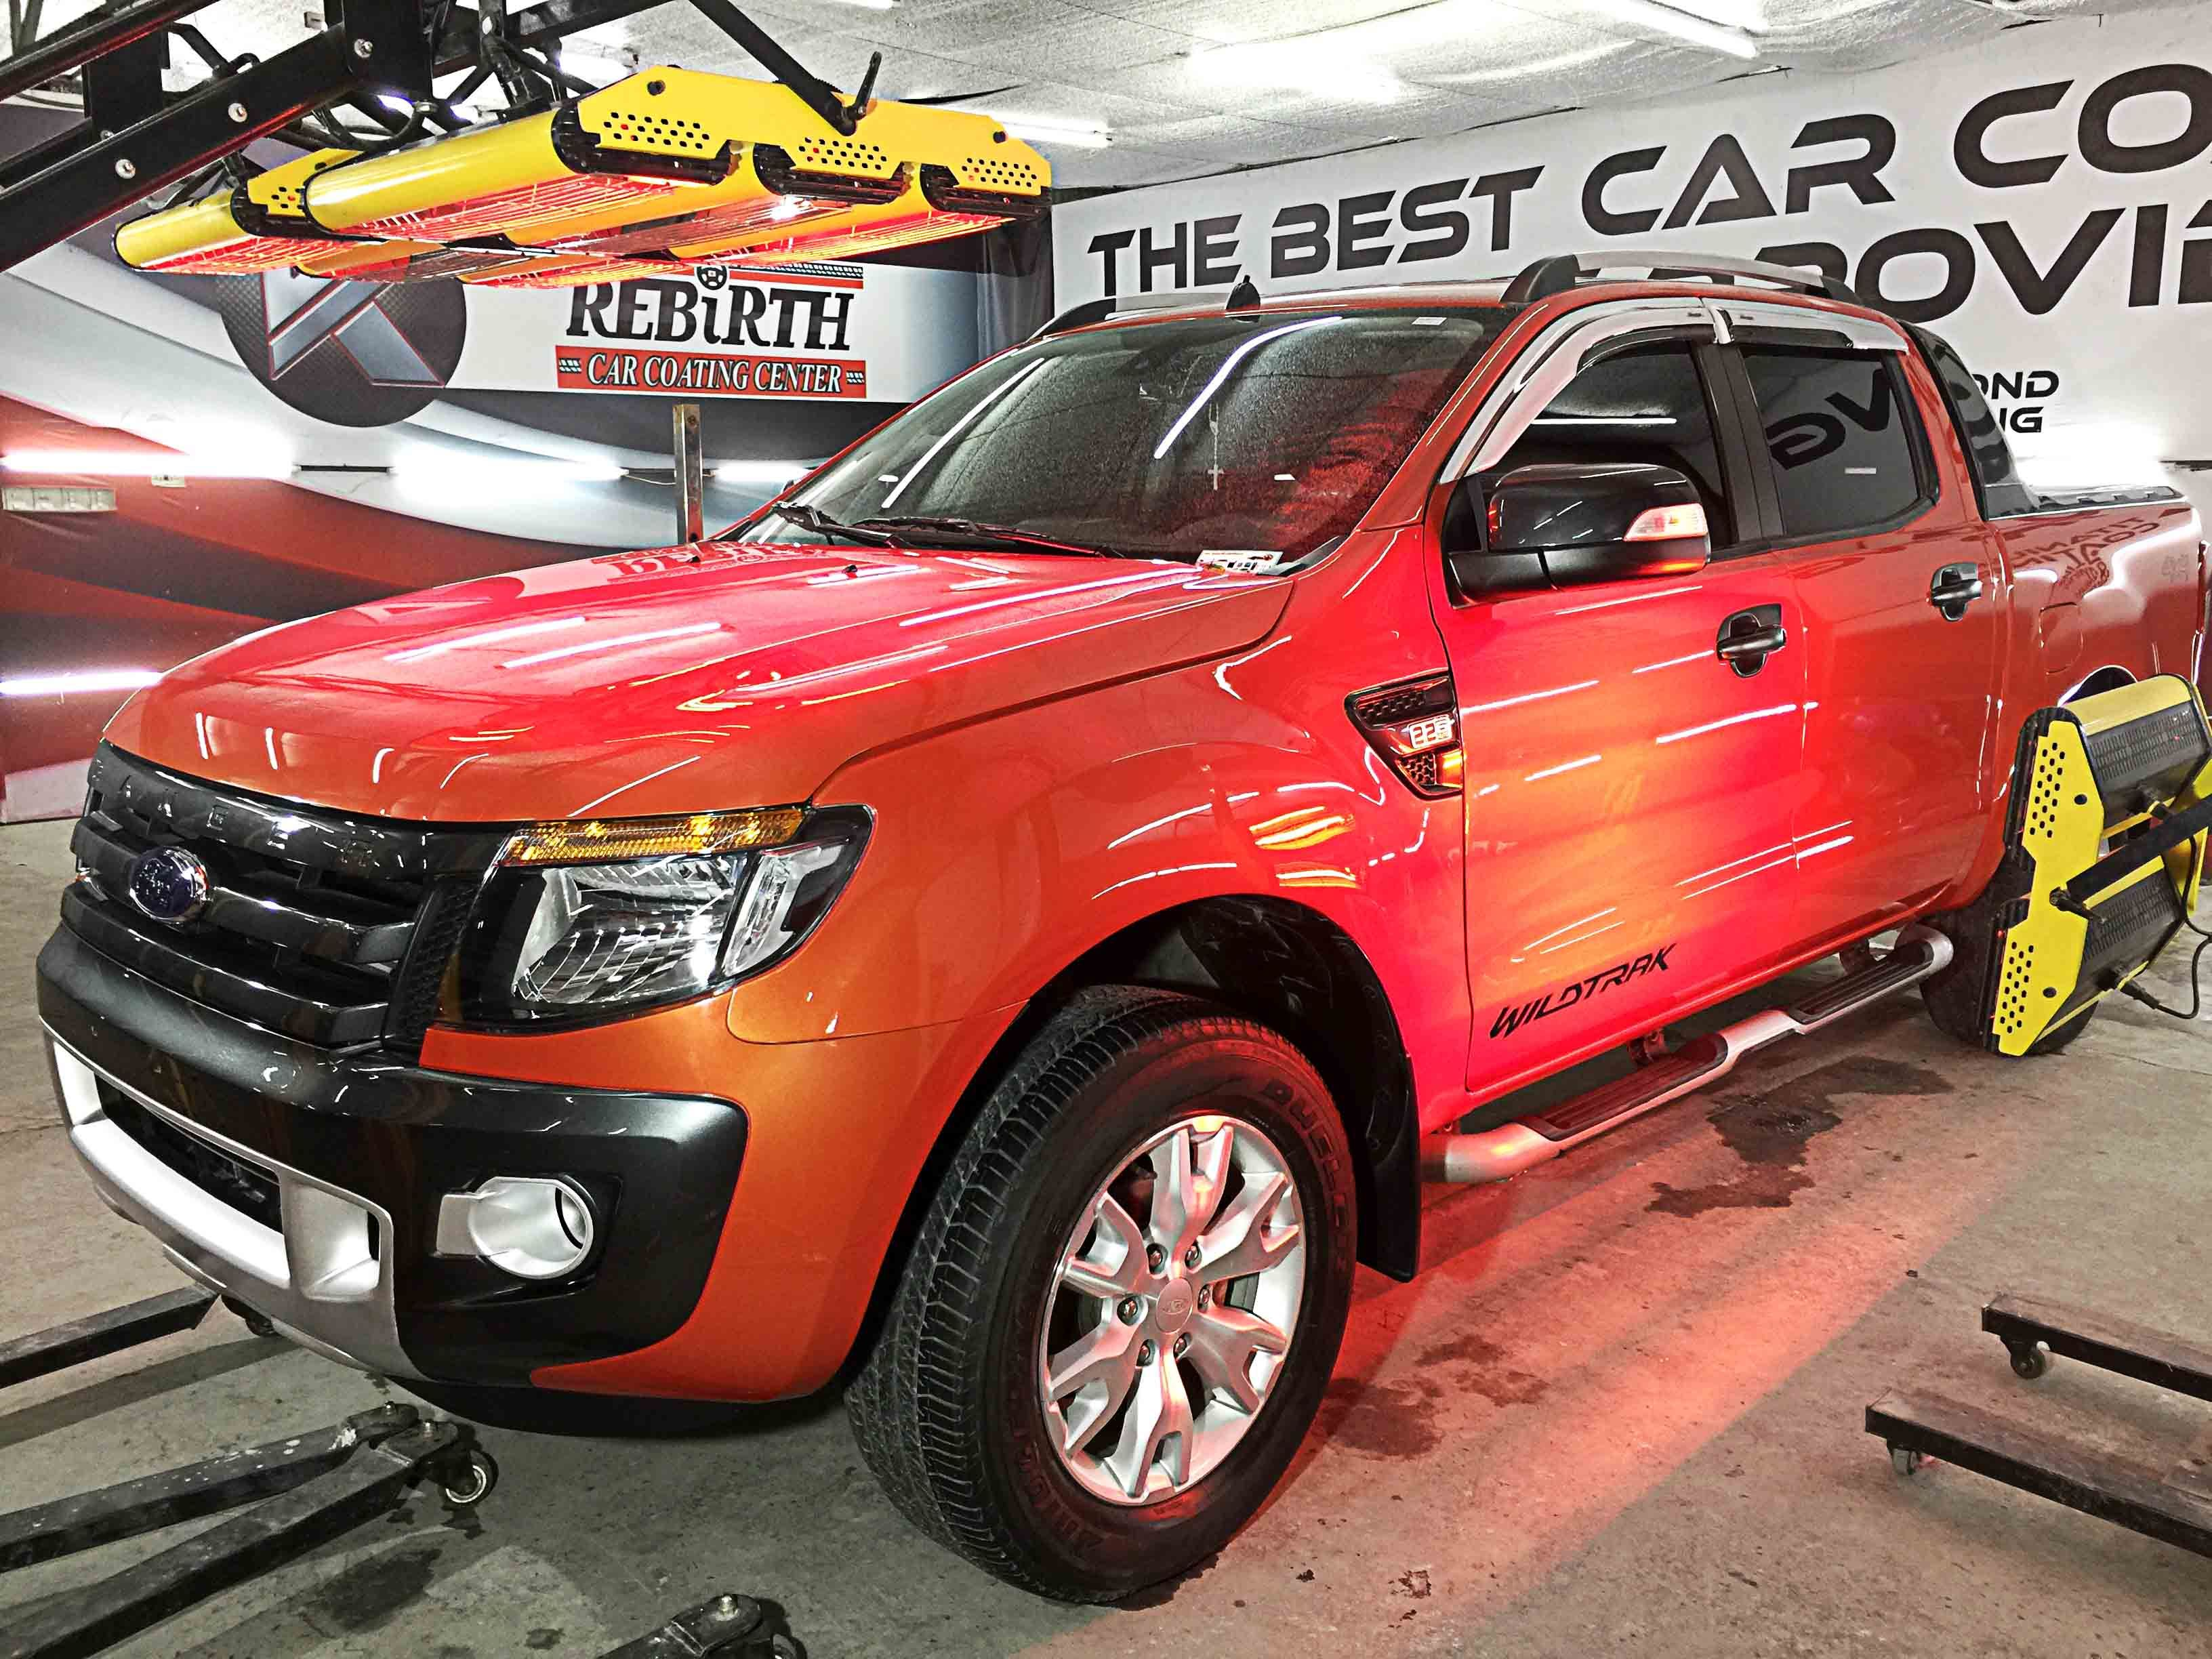 Rebirth Car Coating With Carbon Heating Ford Ranger Car Coating